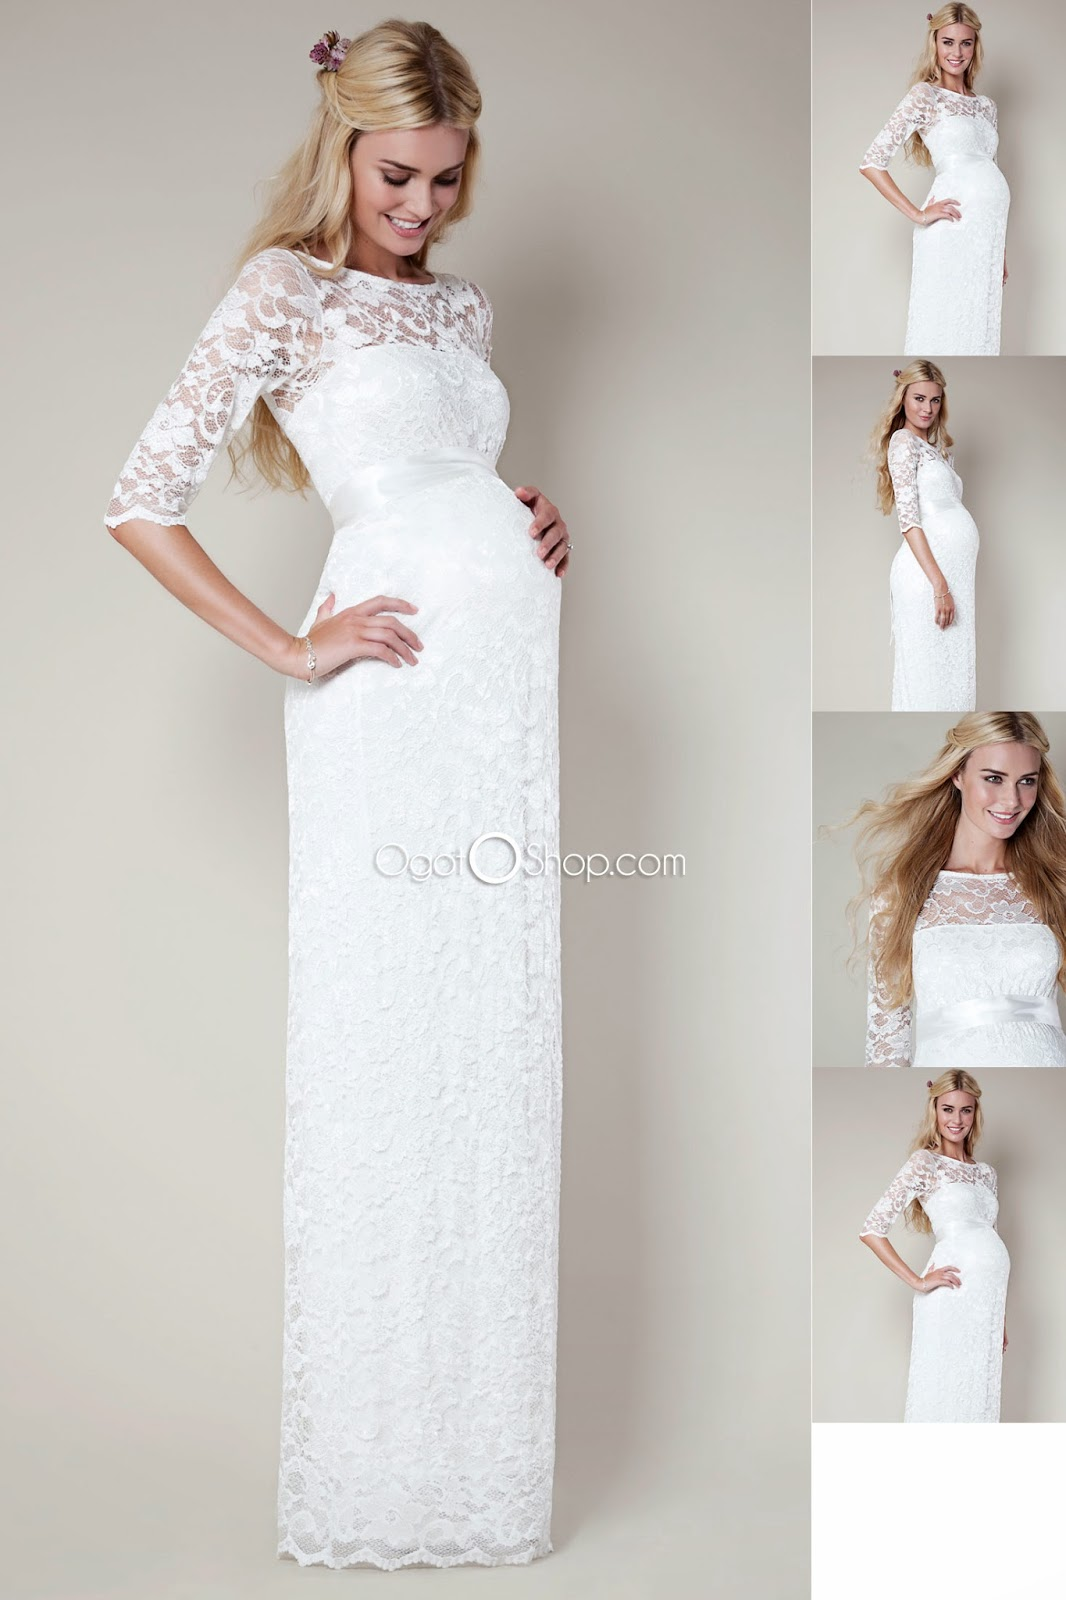 elegant white with lace maternity baby shower dresses winter